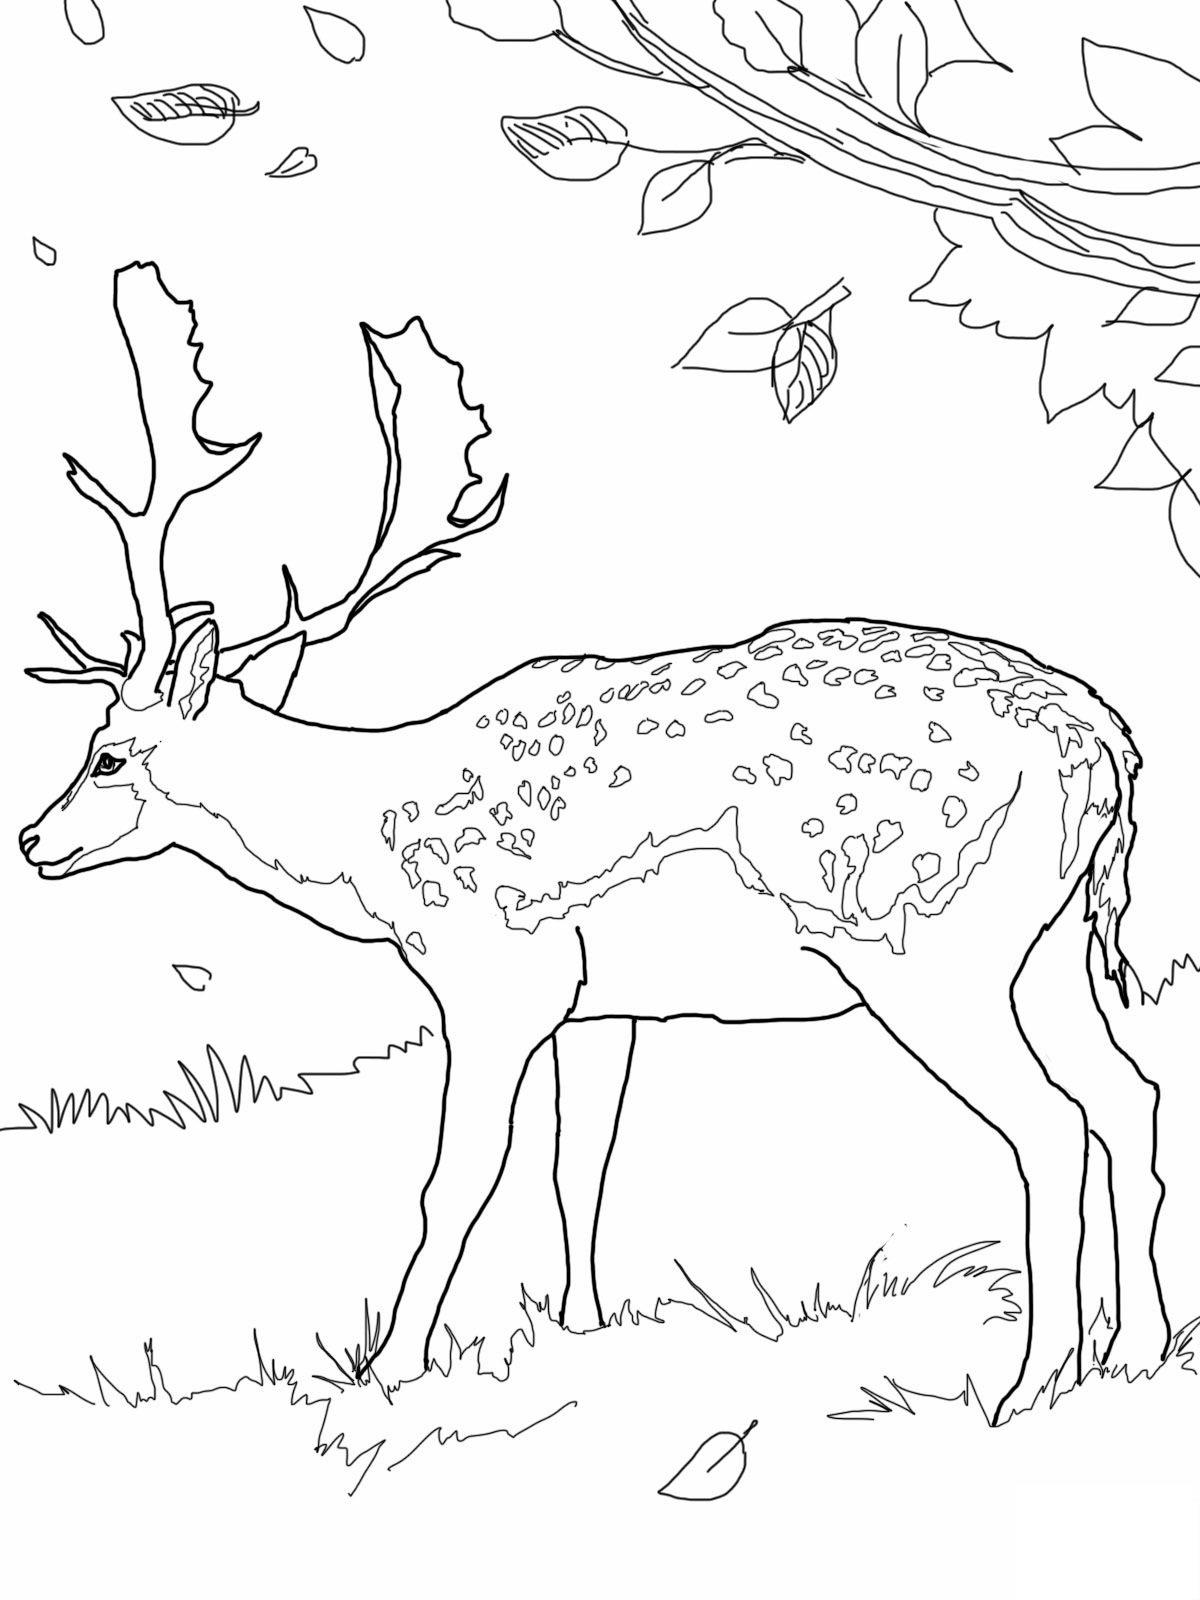 The gruffalo colouring pages to print - Deer Printable Coloring Pages